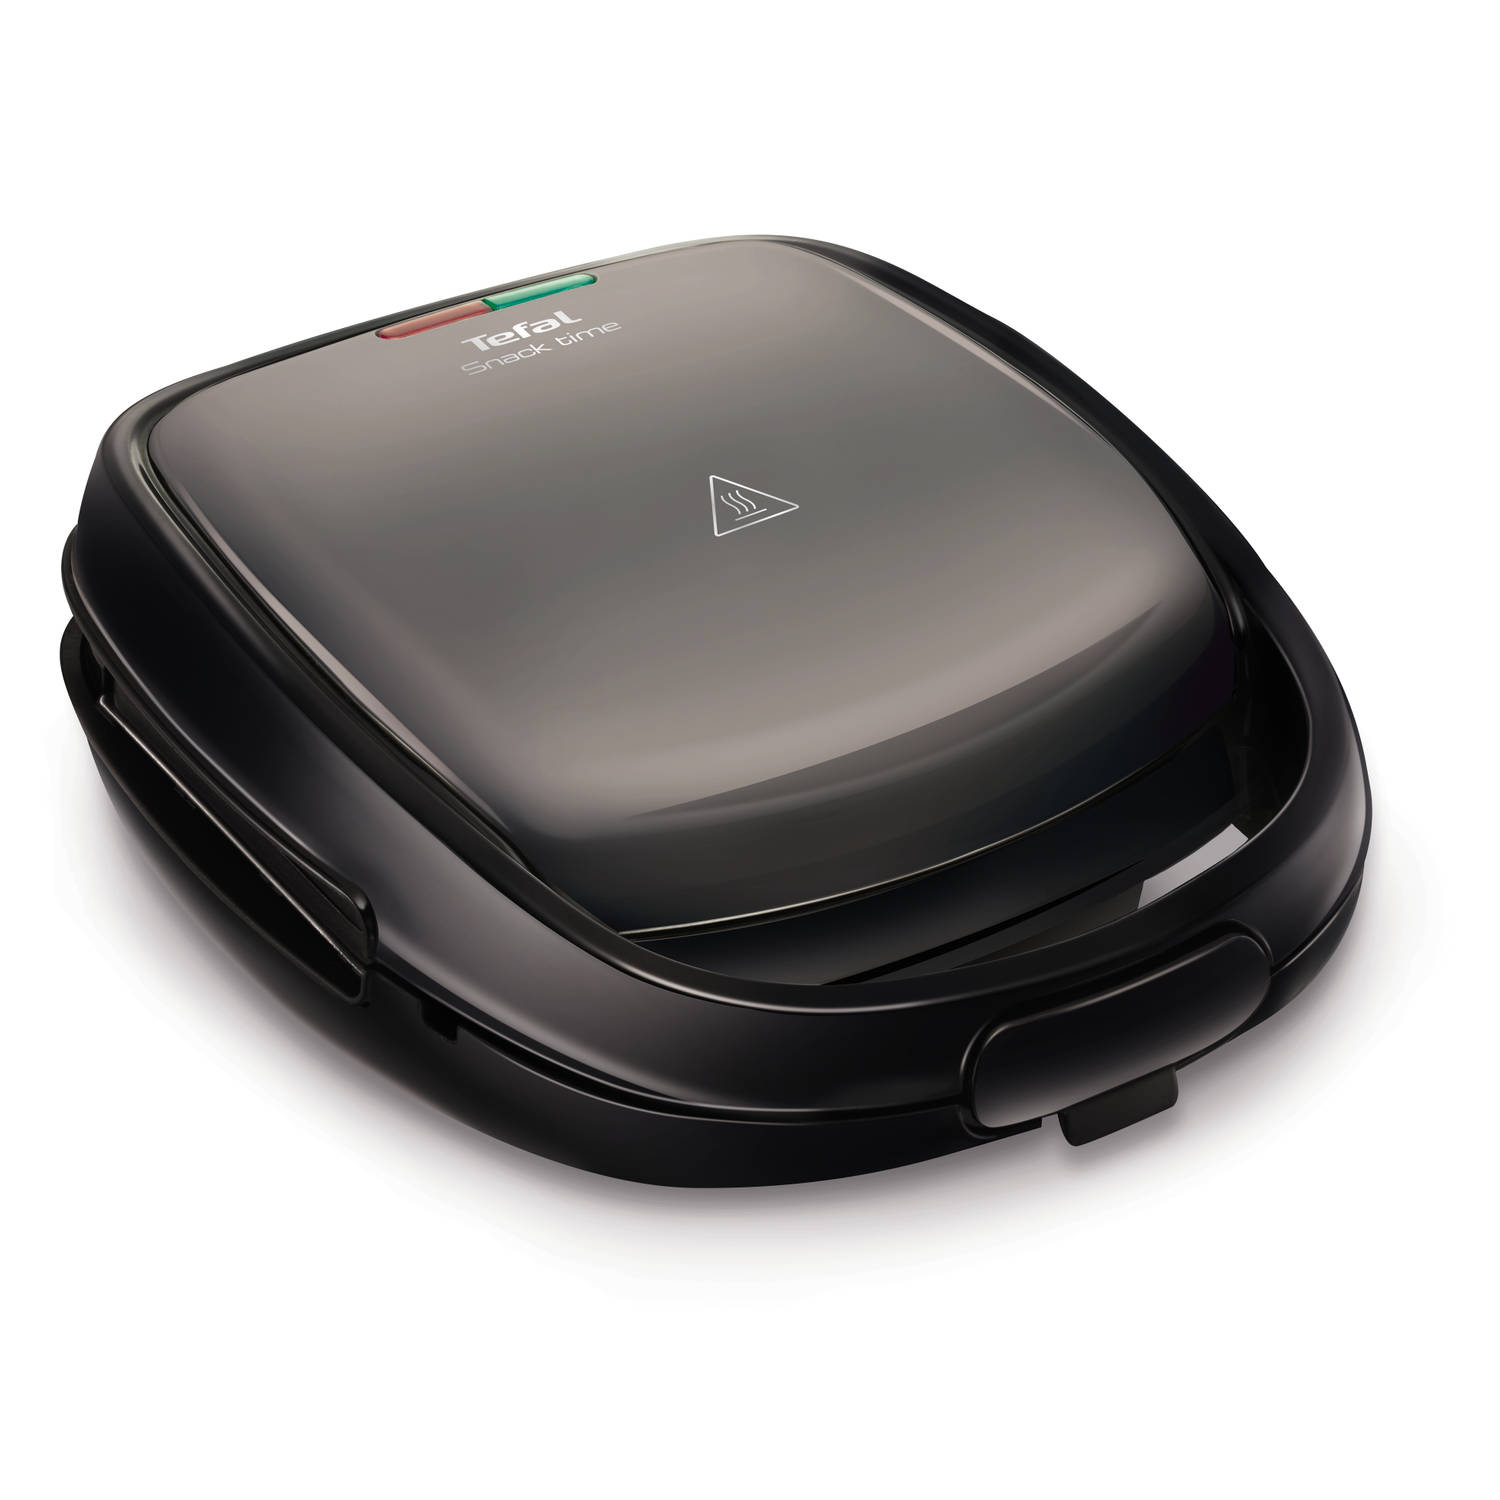 Tefal contactgrill Snack Time SW3418 - grijs